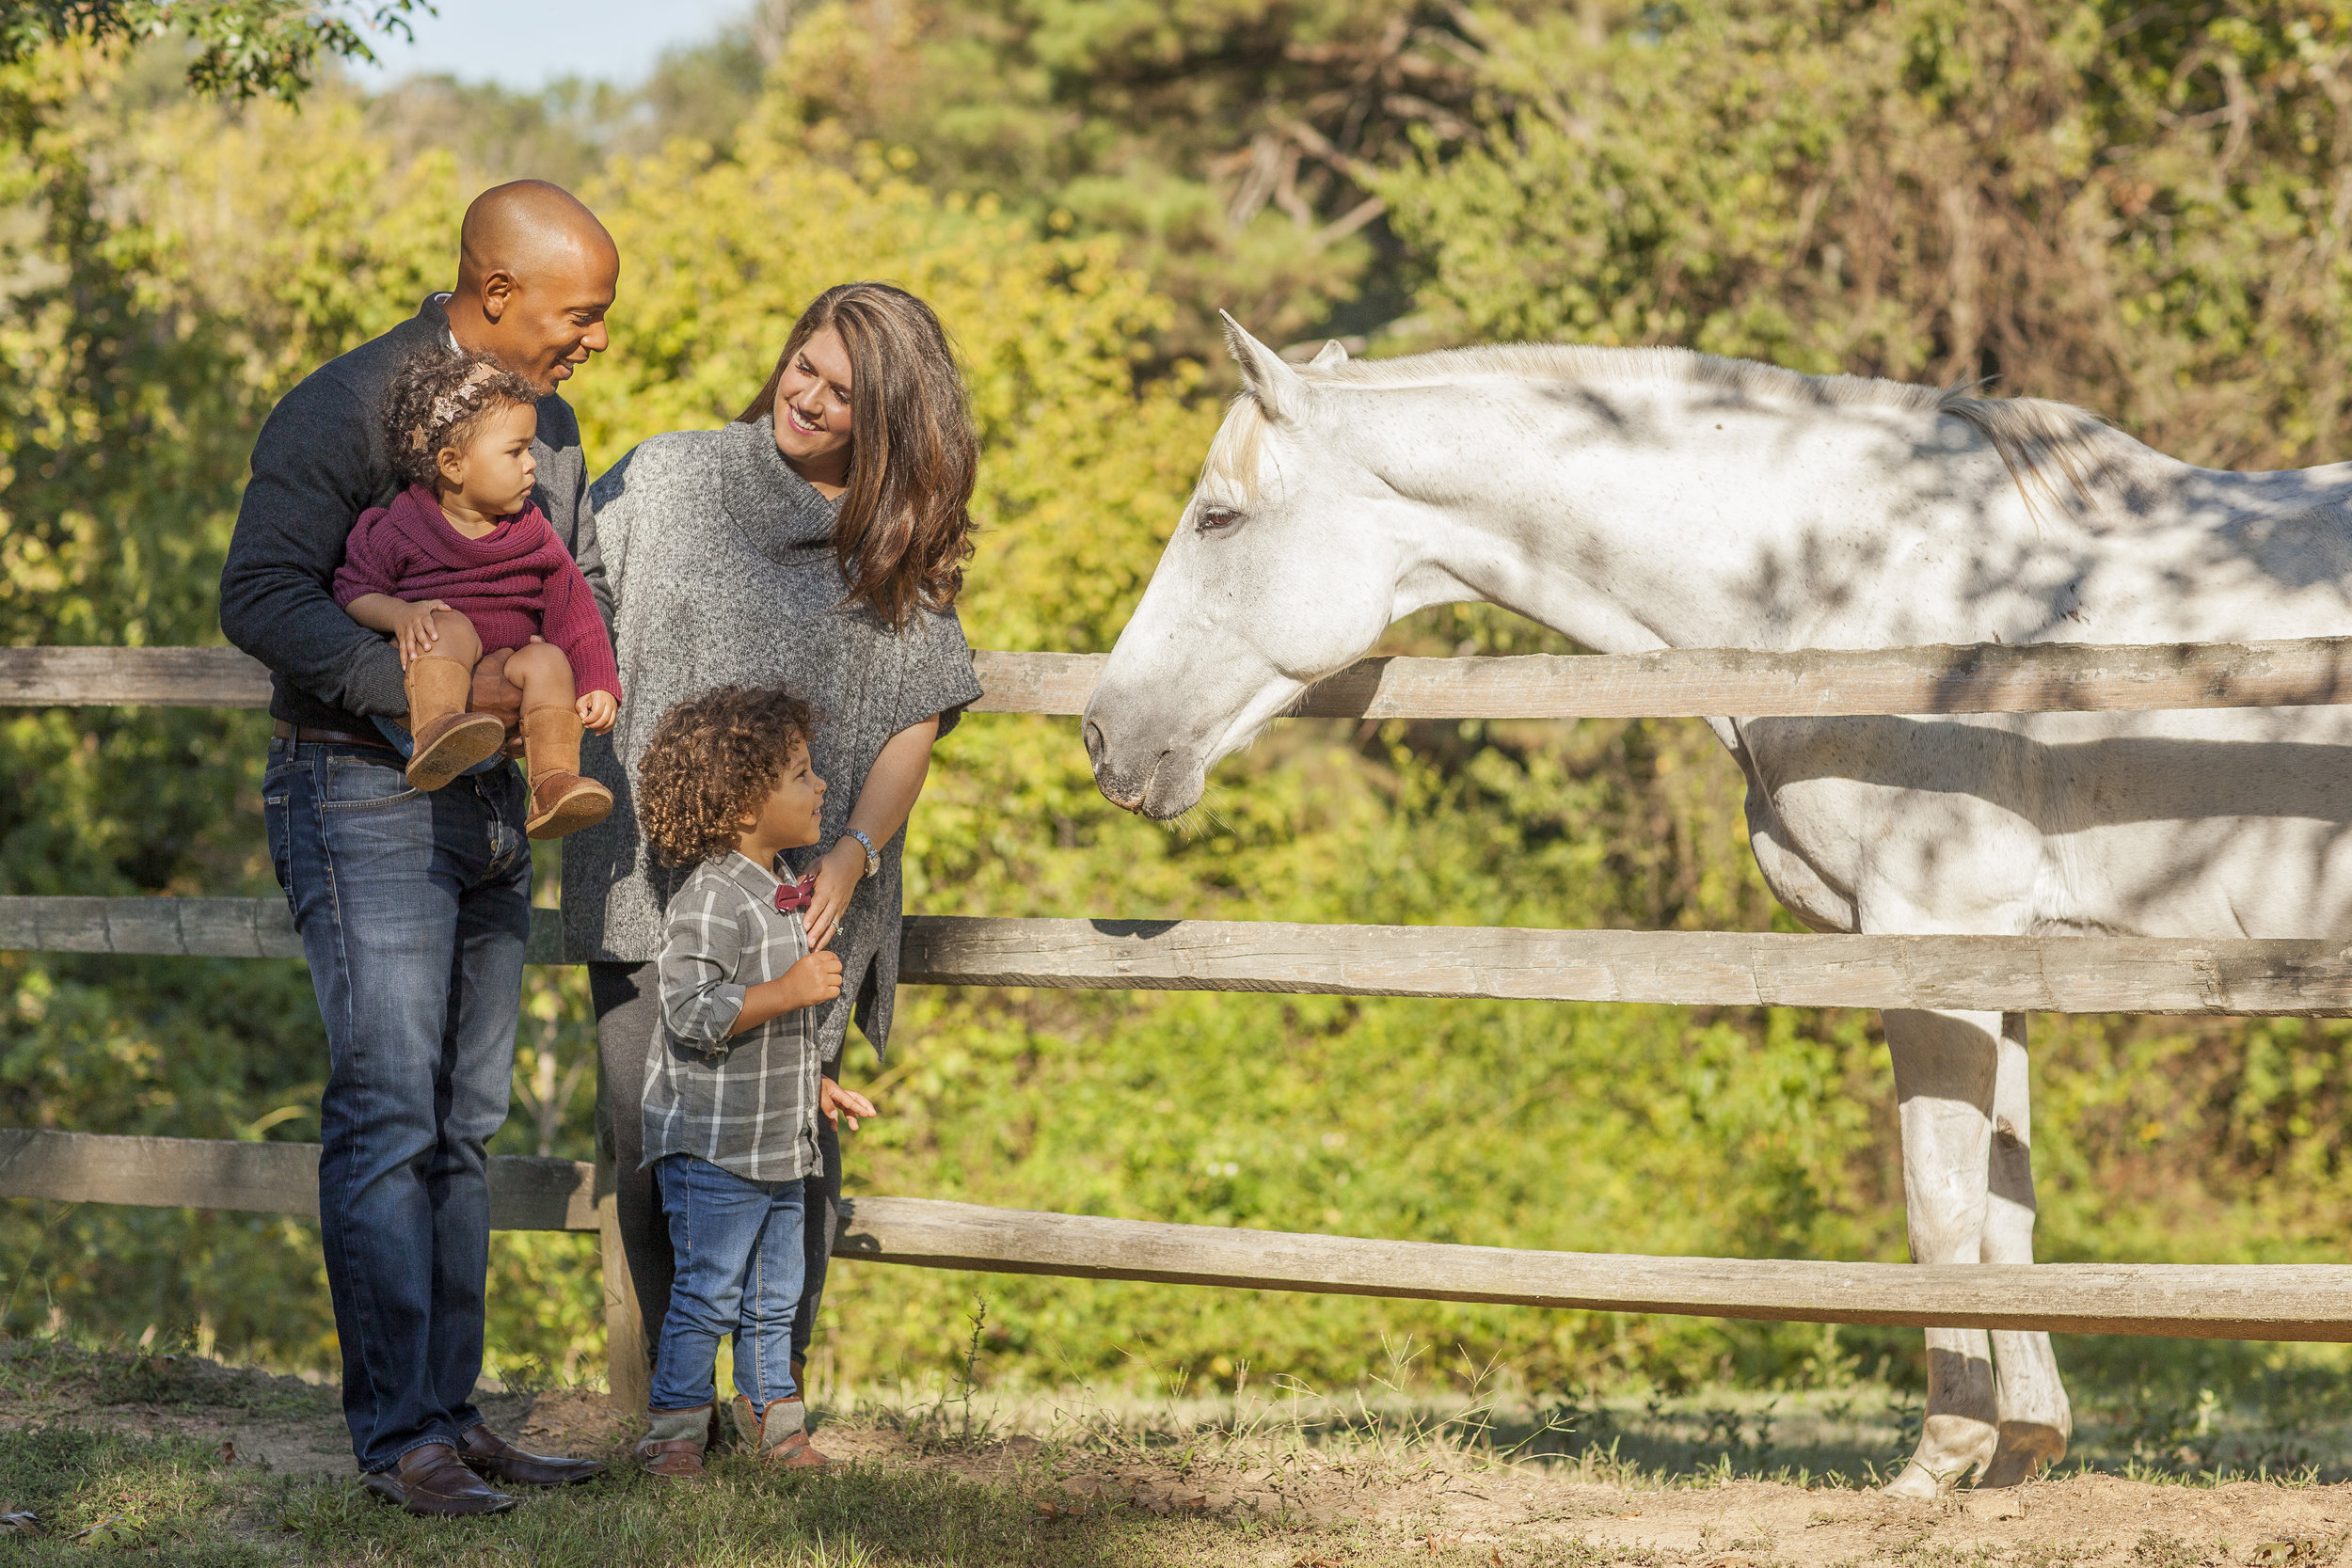 family session young kids mom dad horse outdoor adventure sunny smiles pasture toddler preschool atlanta interracial riding horses